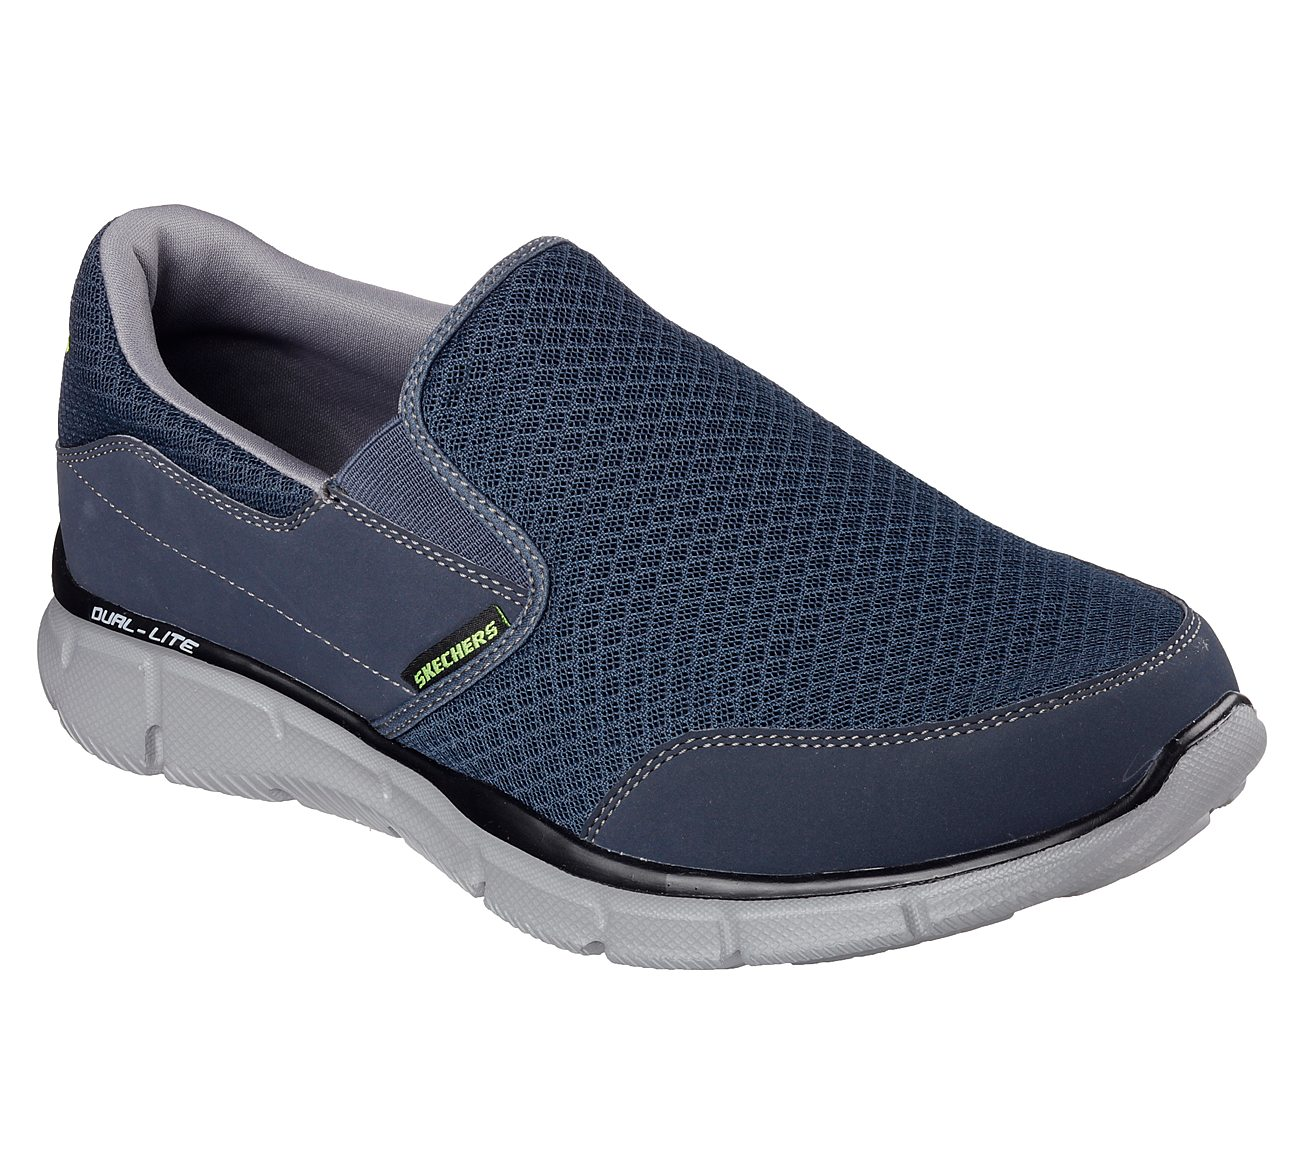 Equalizer - Persistent SKECHERS Sport Shoes